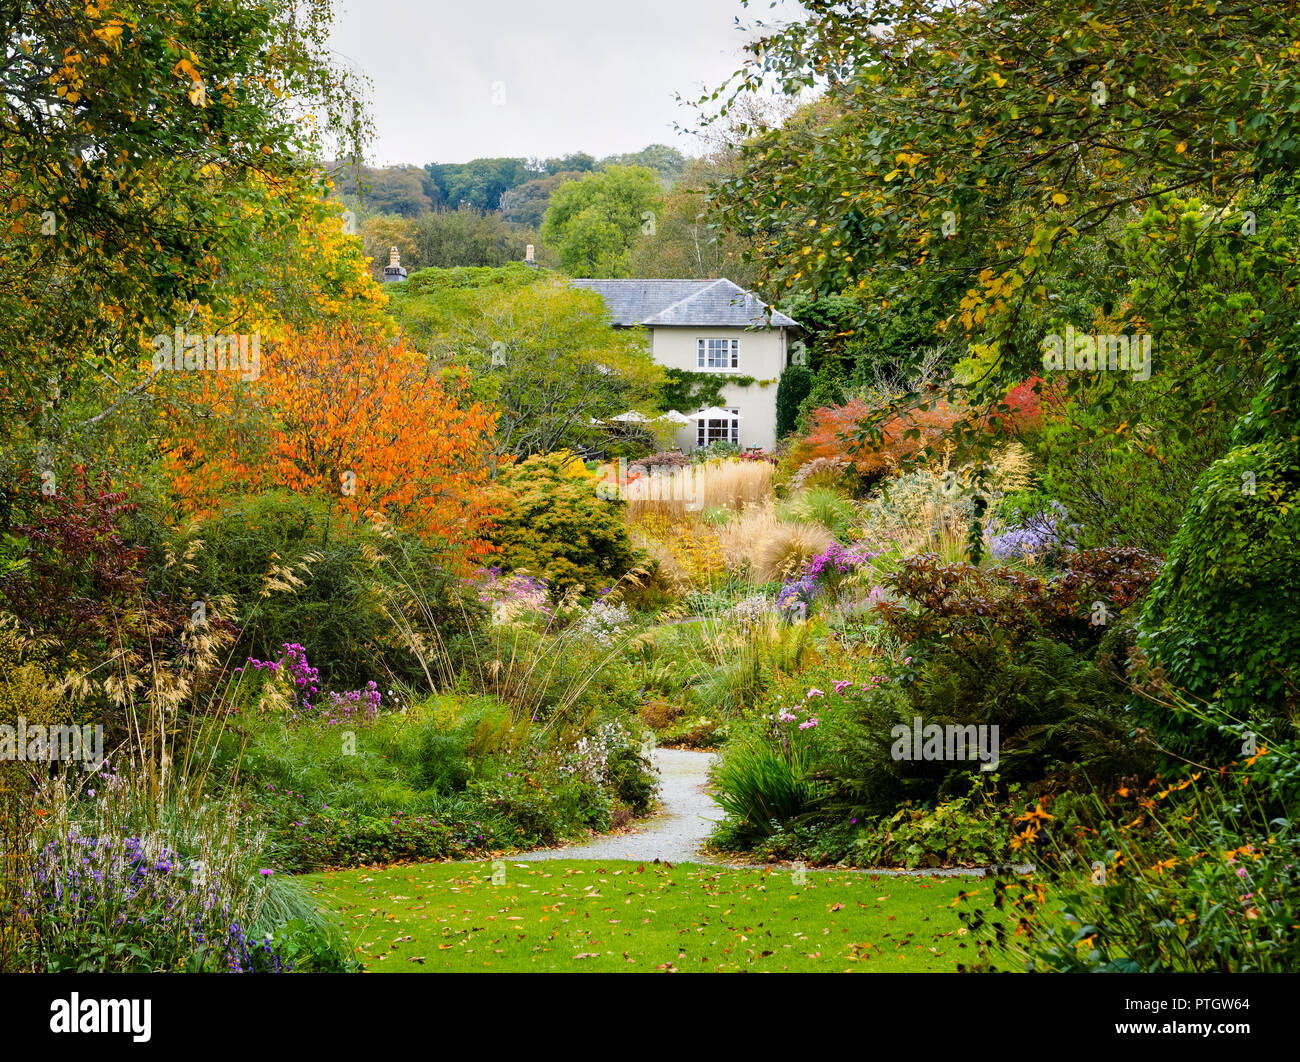 compressed-perspective-view-over-the-autumn-hues-of-the-long-walk-at-the-garden-house-buckland-monachorum-devon-uk-PTGW64.jpg